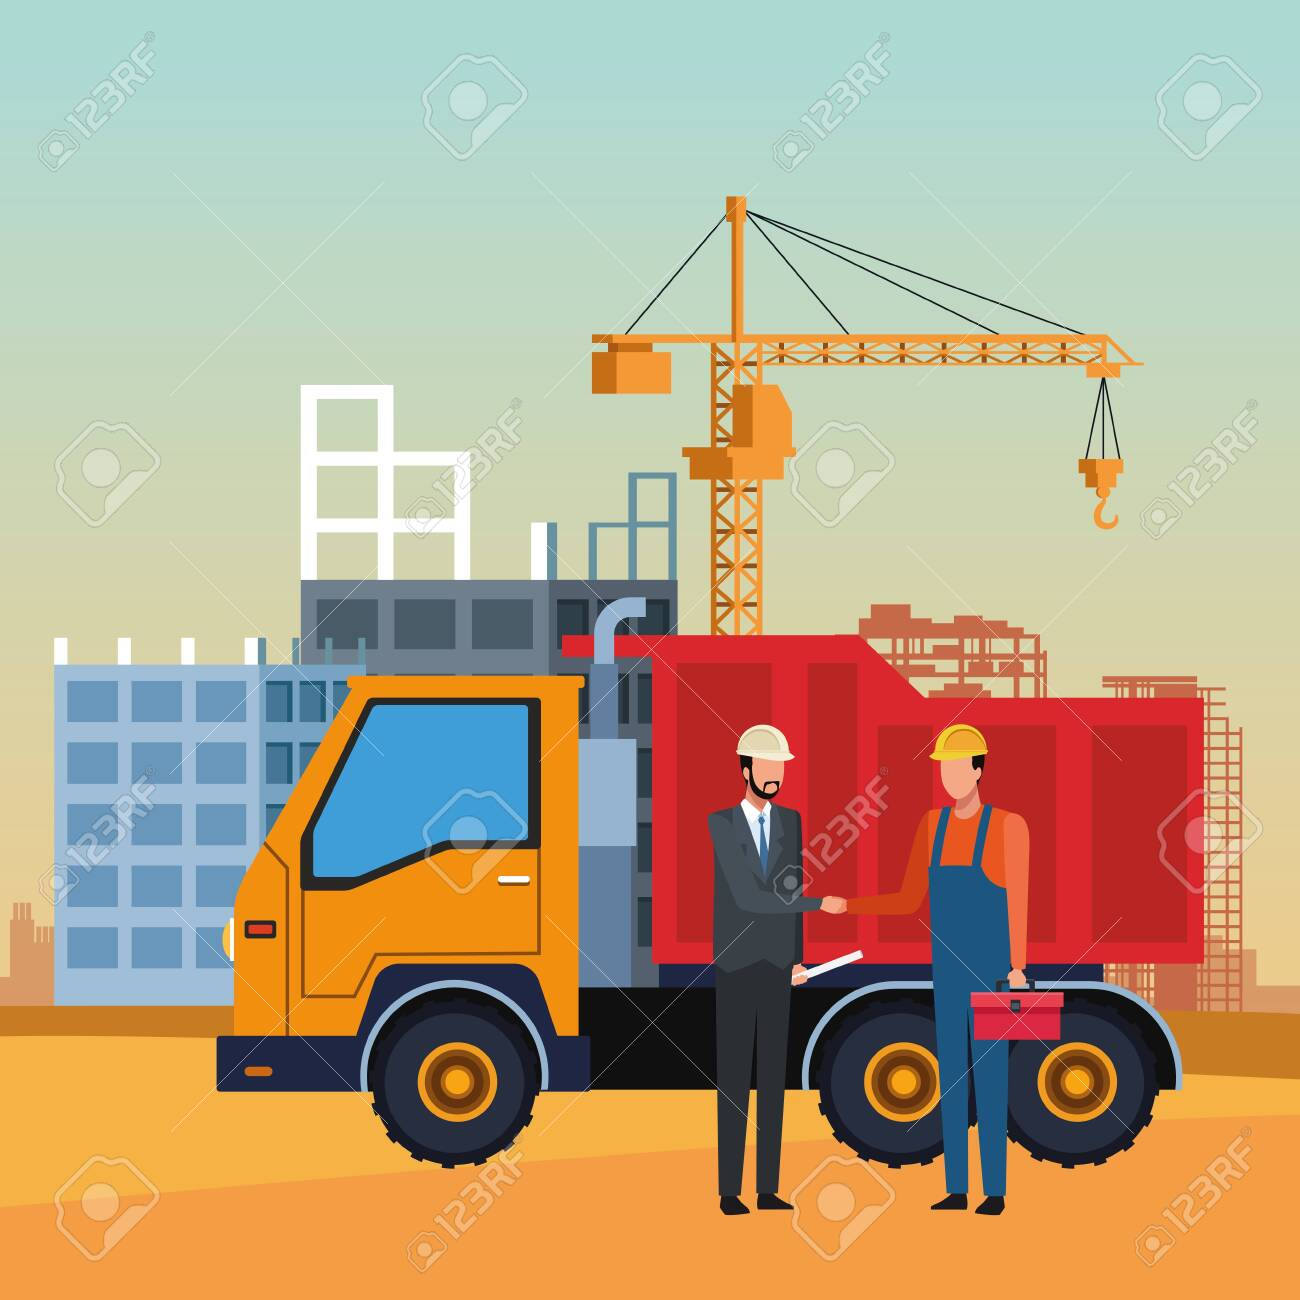 dump truck and engineer and builder over under construction scenery, colorful design, vector illustration - 136203493